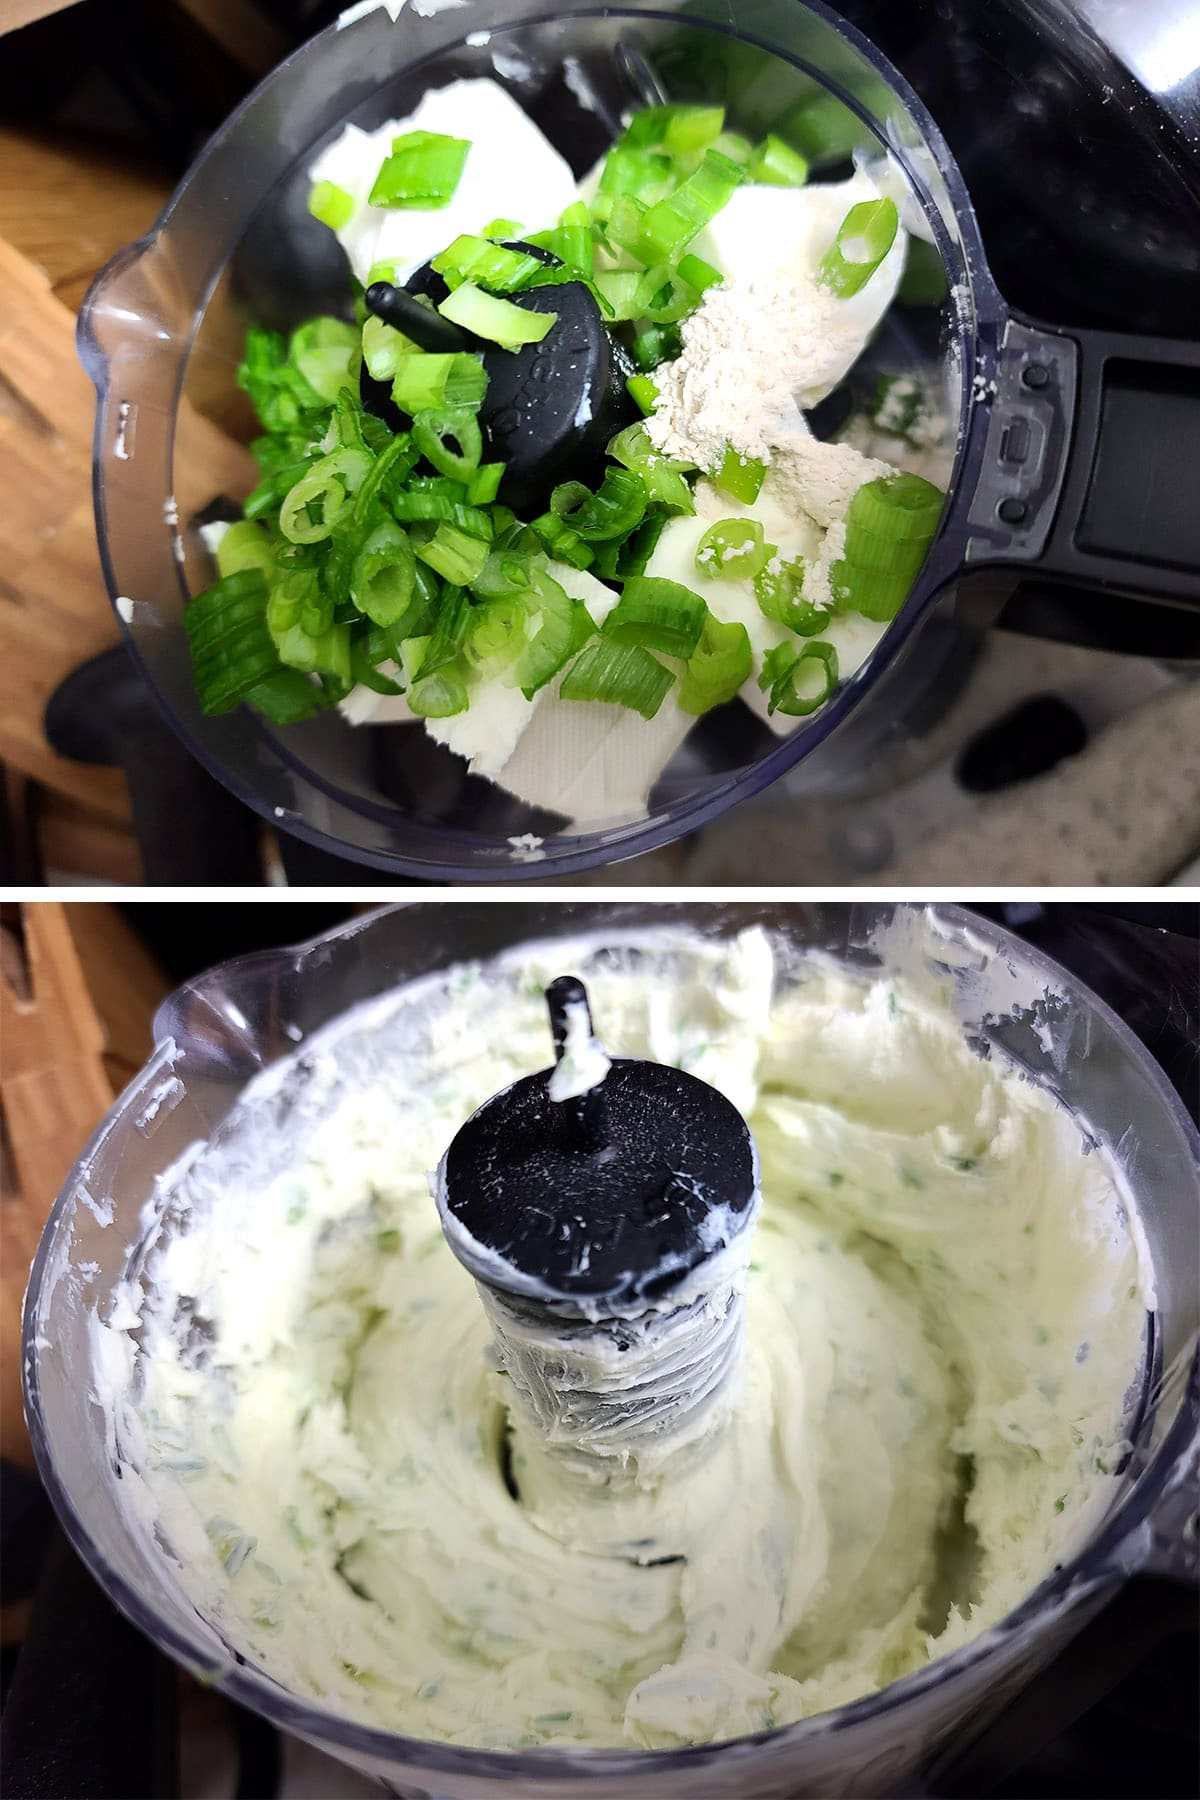 Green onions and cream cheese in a mini food processor, before and after processing.